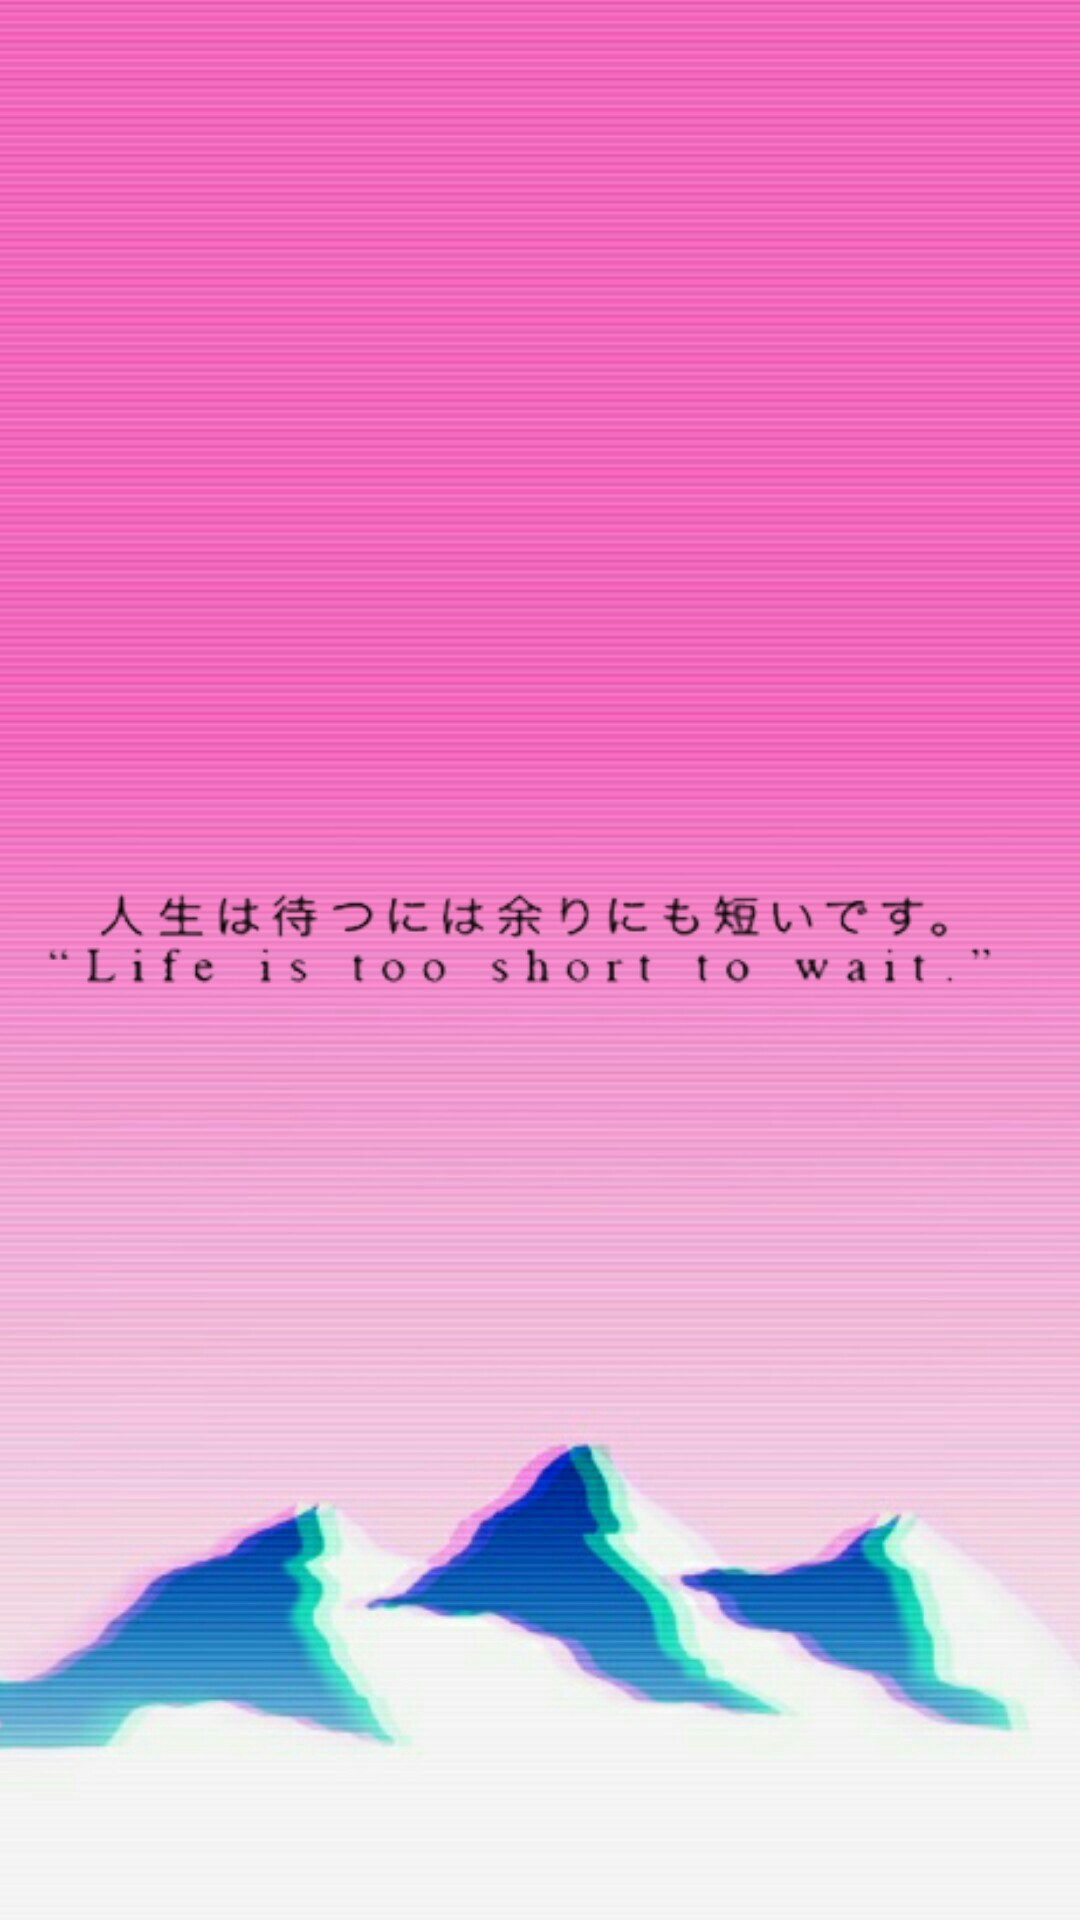 vaporwave pink quotes sayings quotes blue pinksky aes